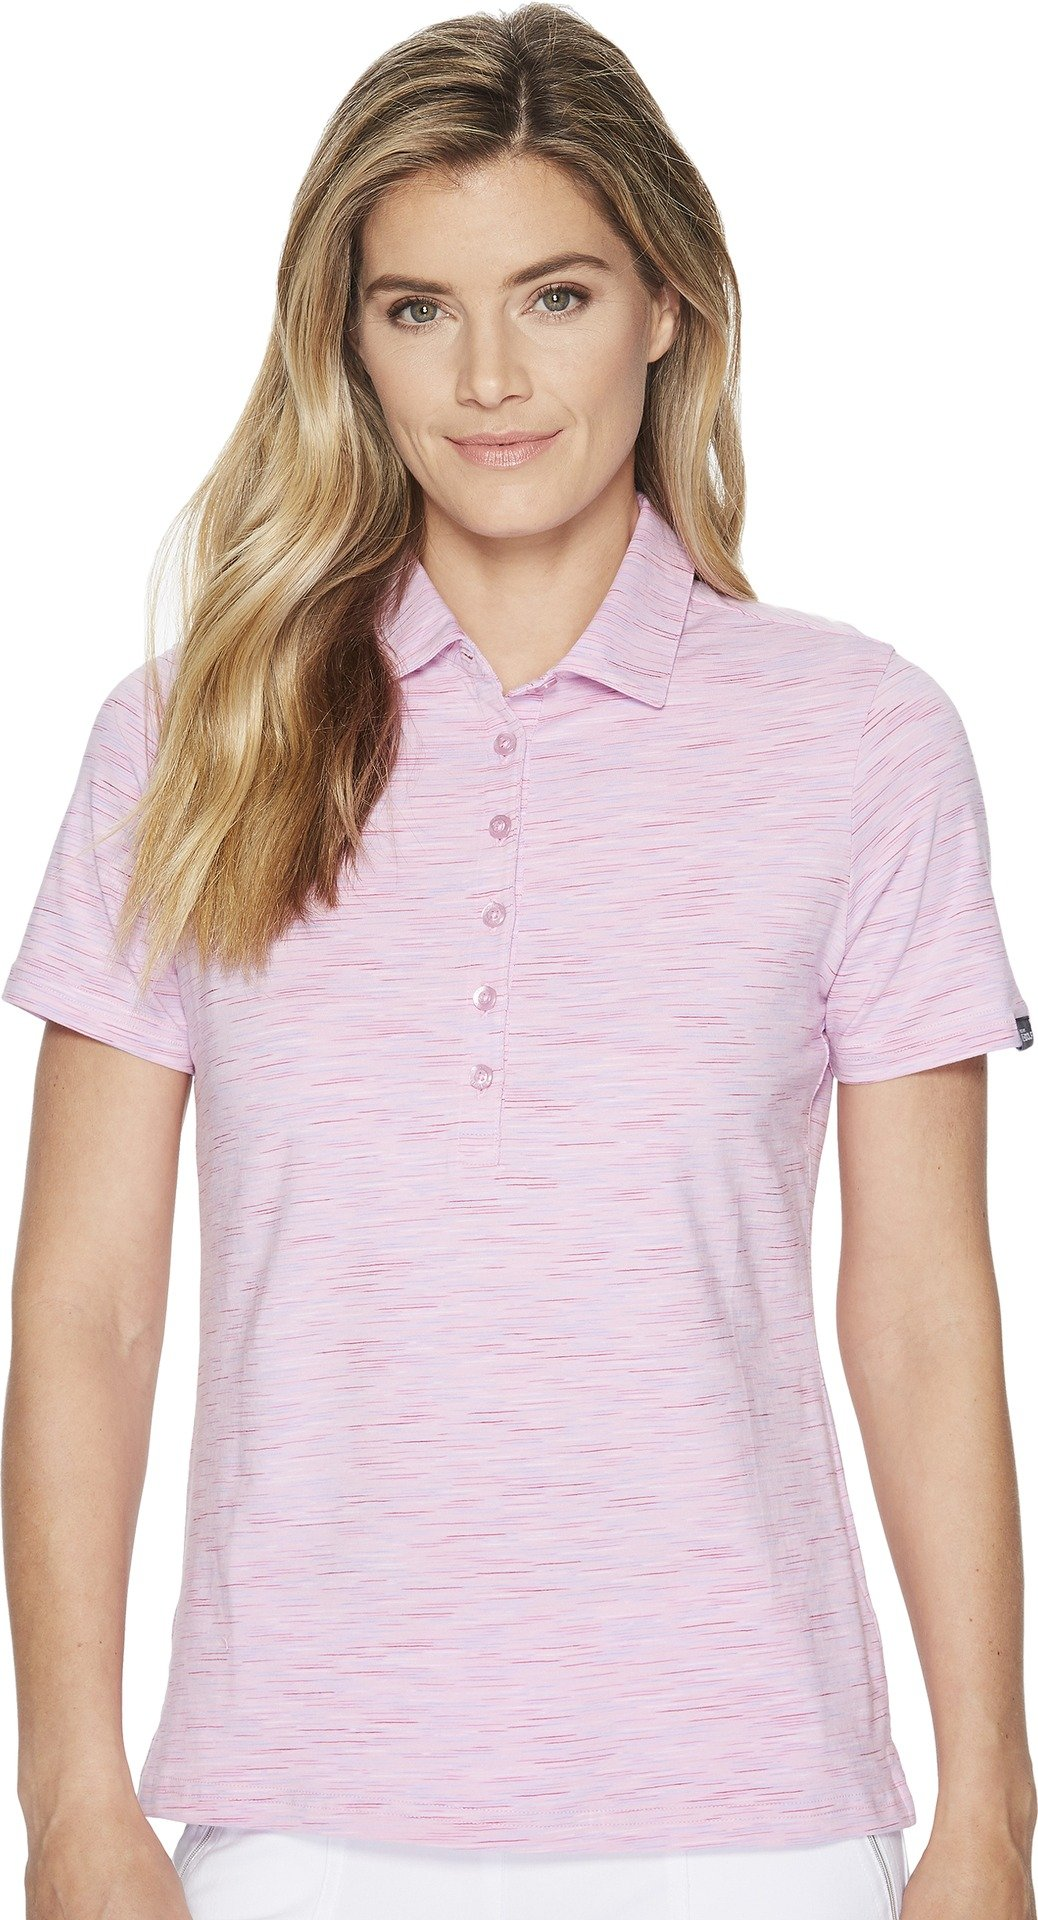 Skechers Performance Womens Go Golf Space Dye Polo Light Pink MD One Size